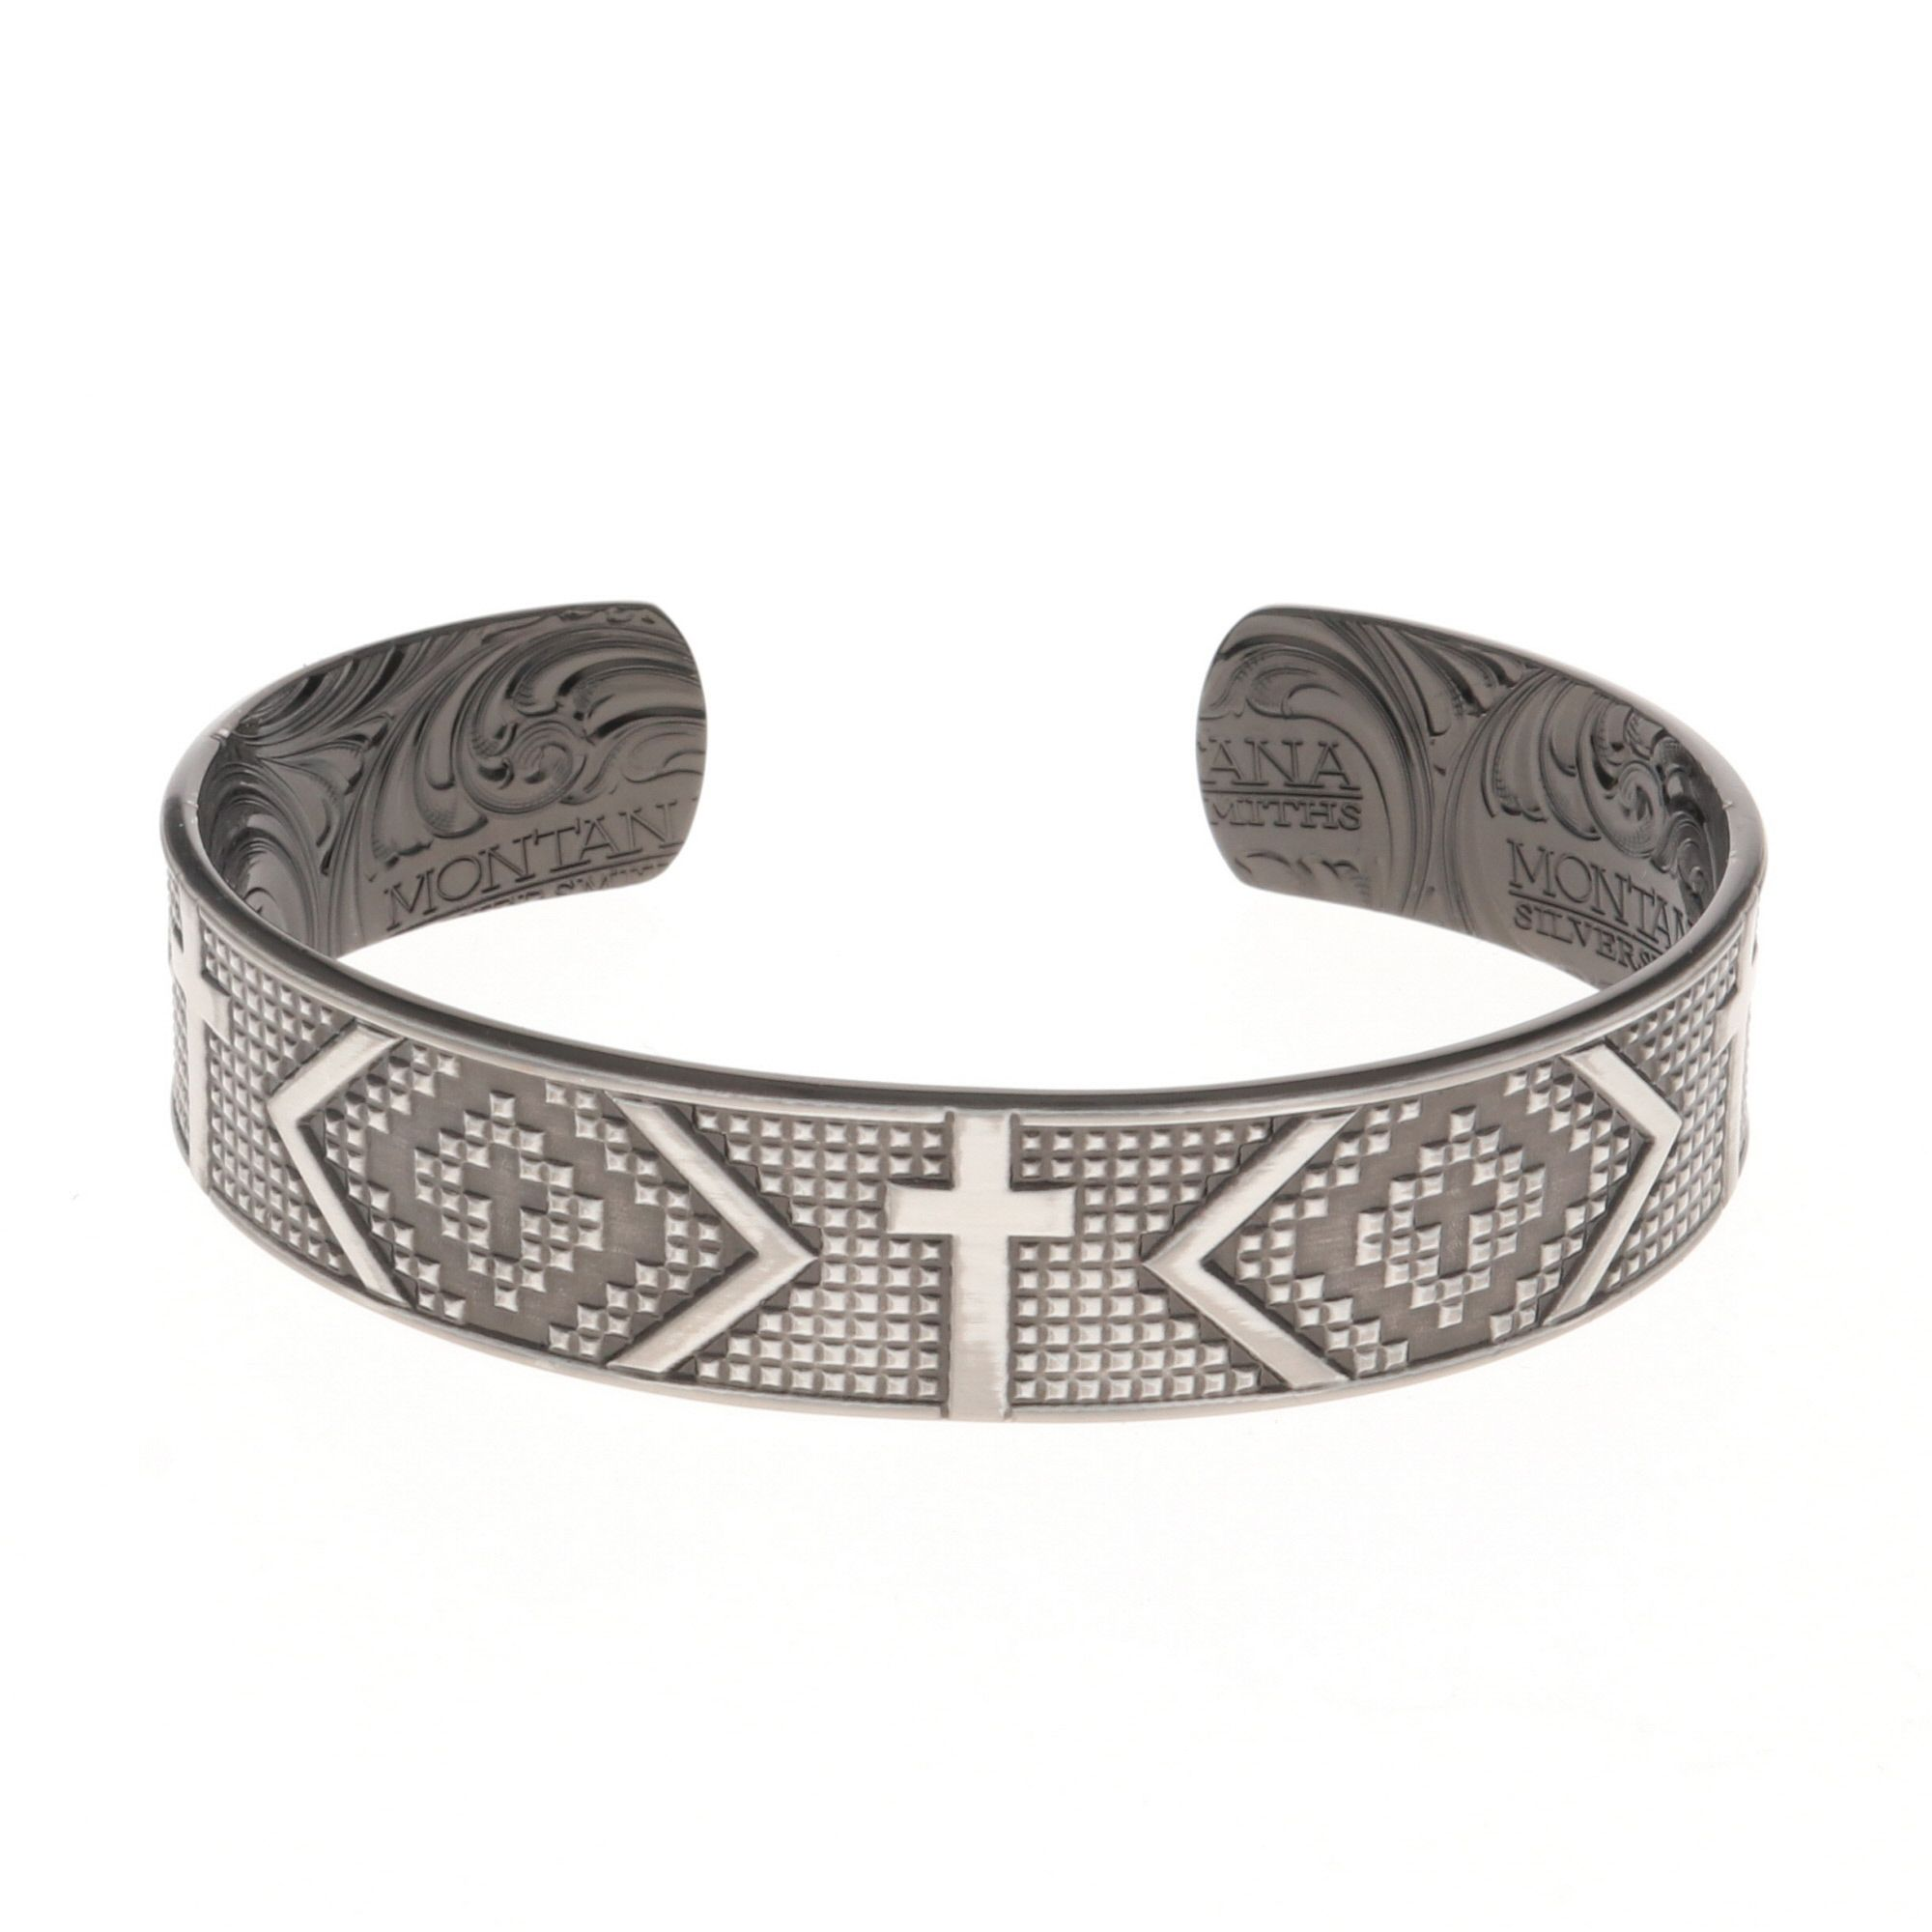 Impressions of Faith Cross Cuff Bracelet